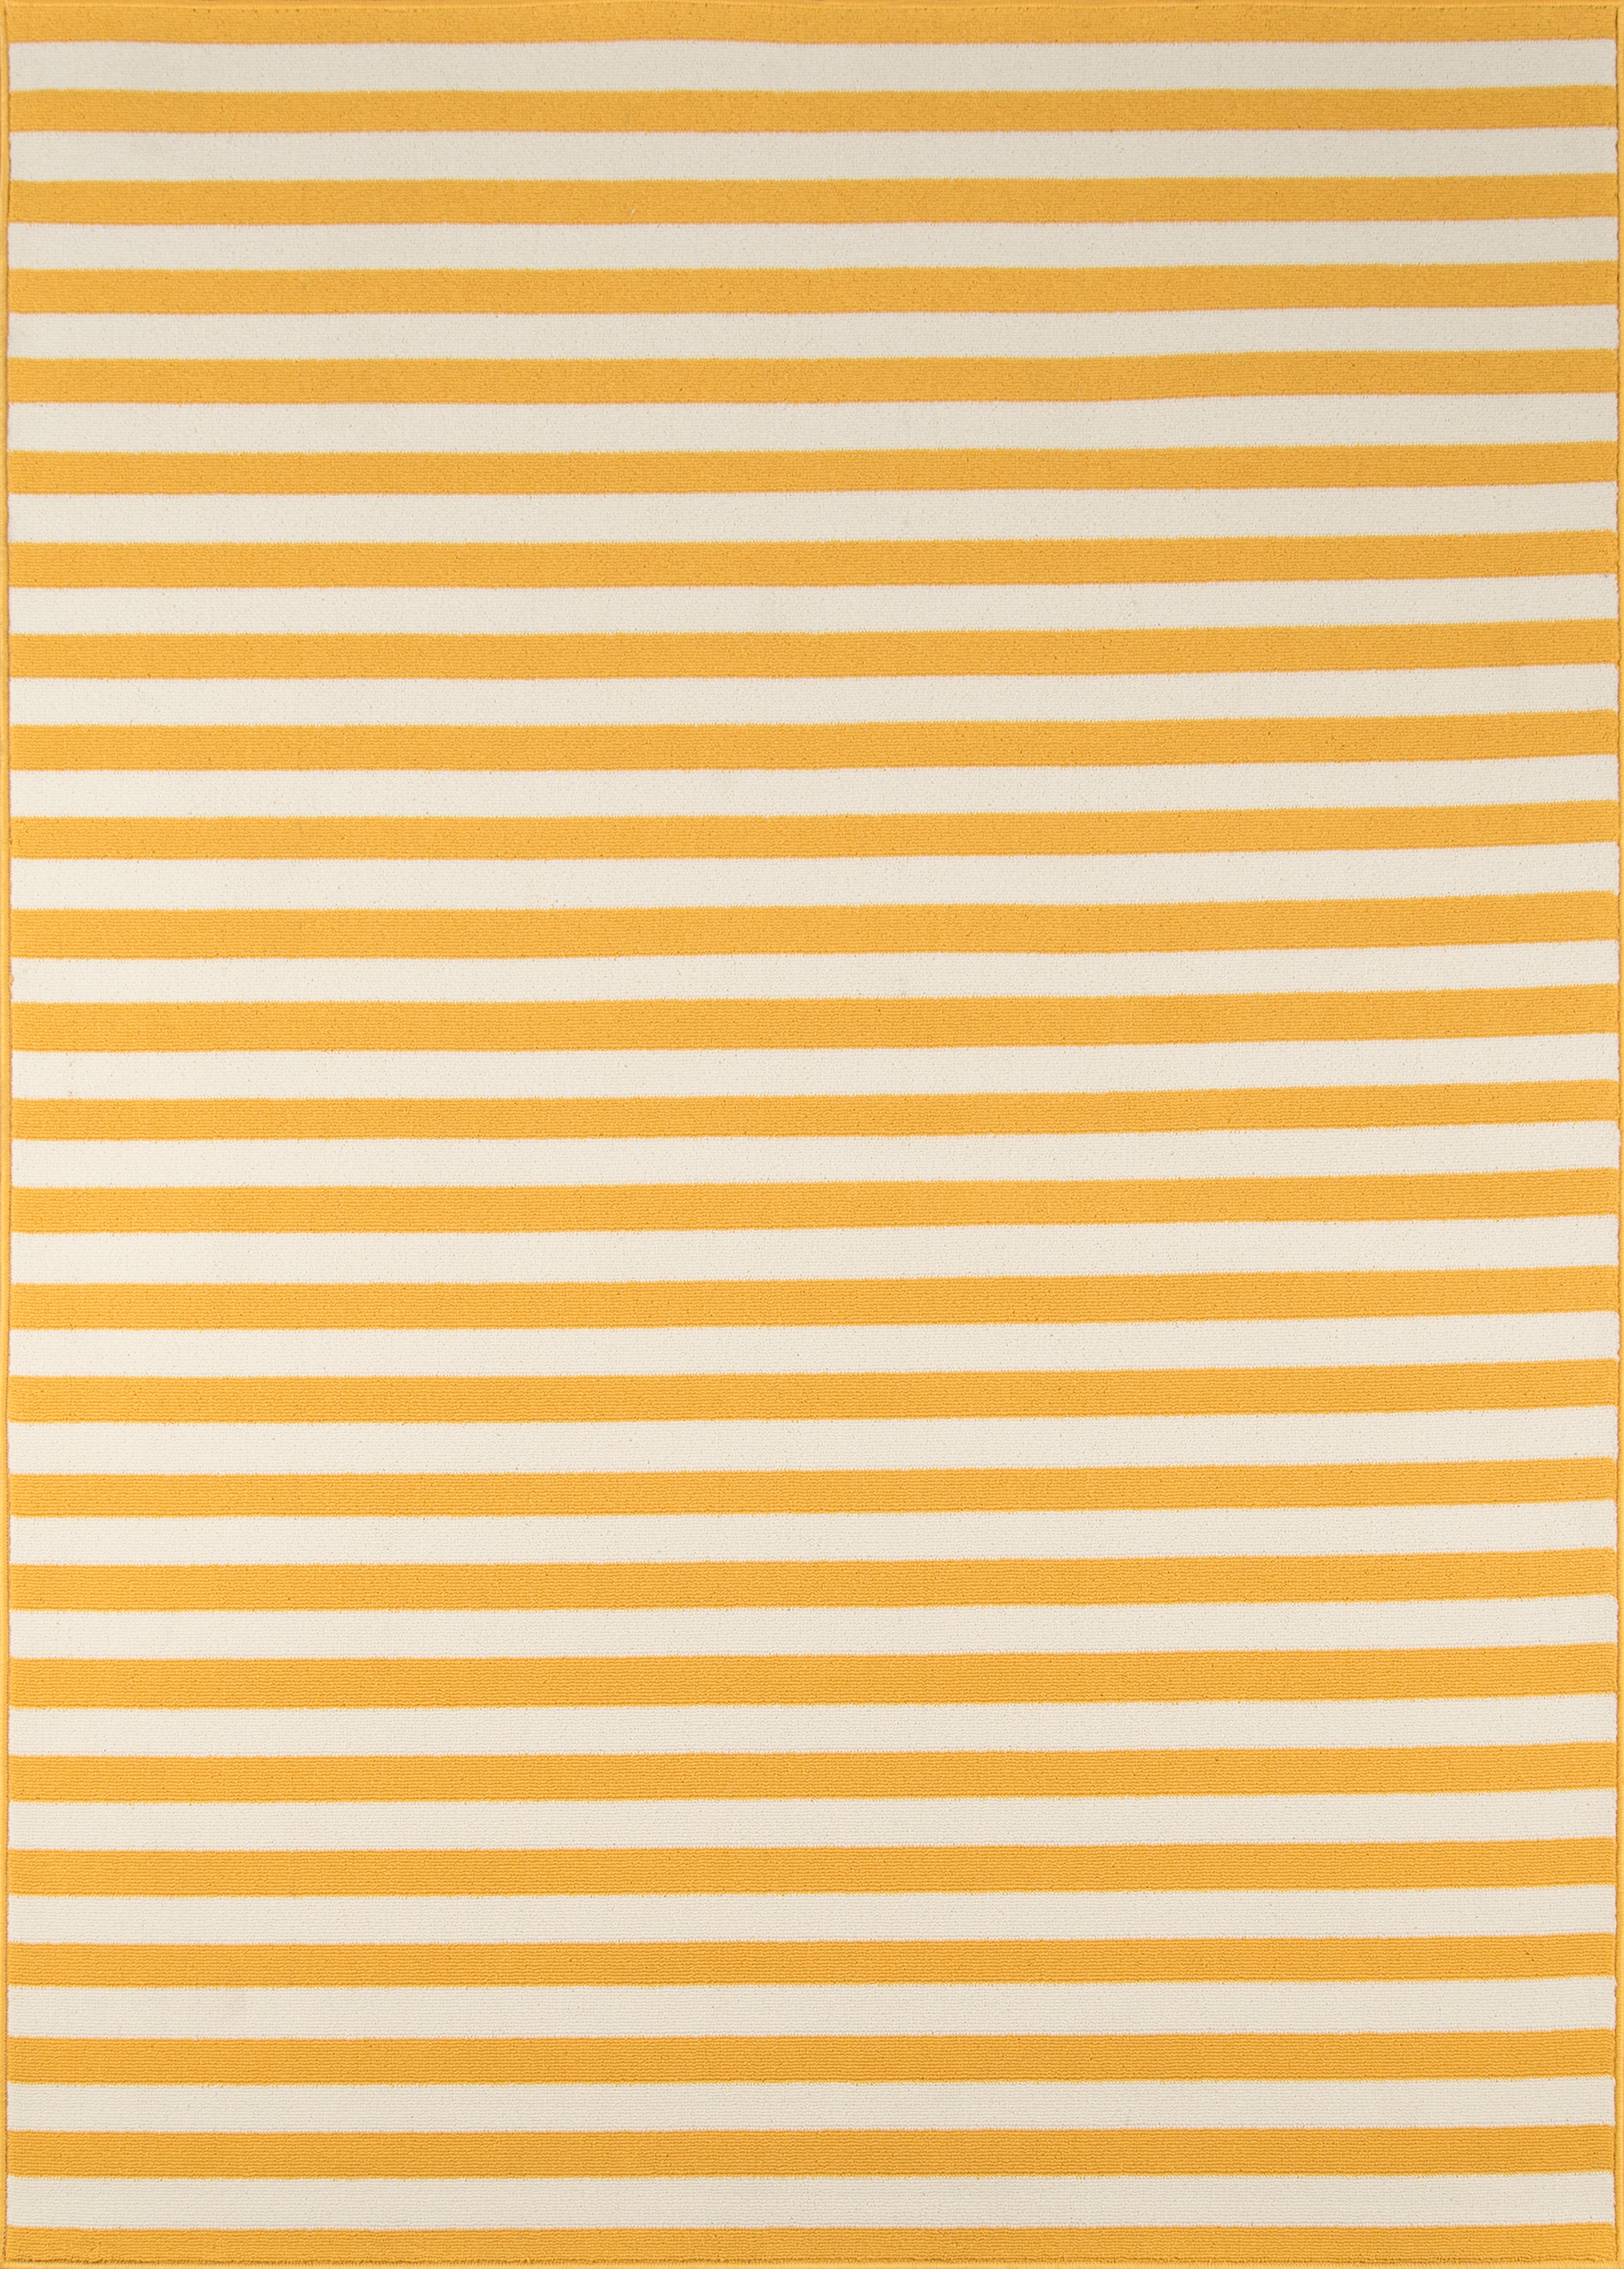 Rectangle 18x37 Yellow Striped Machine Made Synthetics Contemporary recommended for Kitchen, Bedroom, Bathroom, Outdoor, Dining Room, Office, Hallway, Living Room